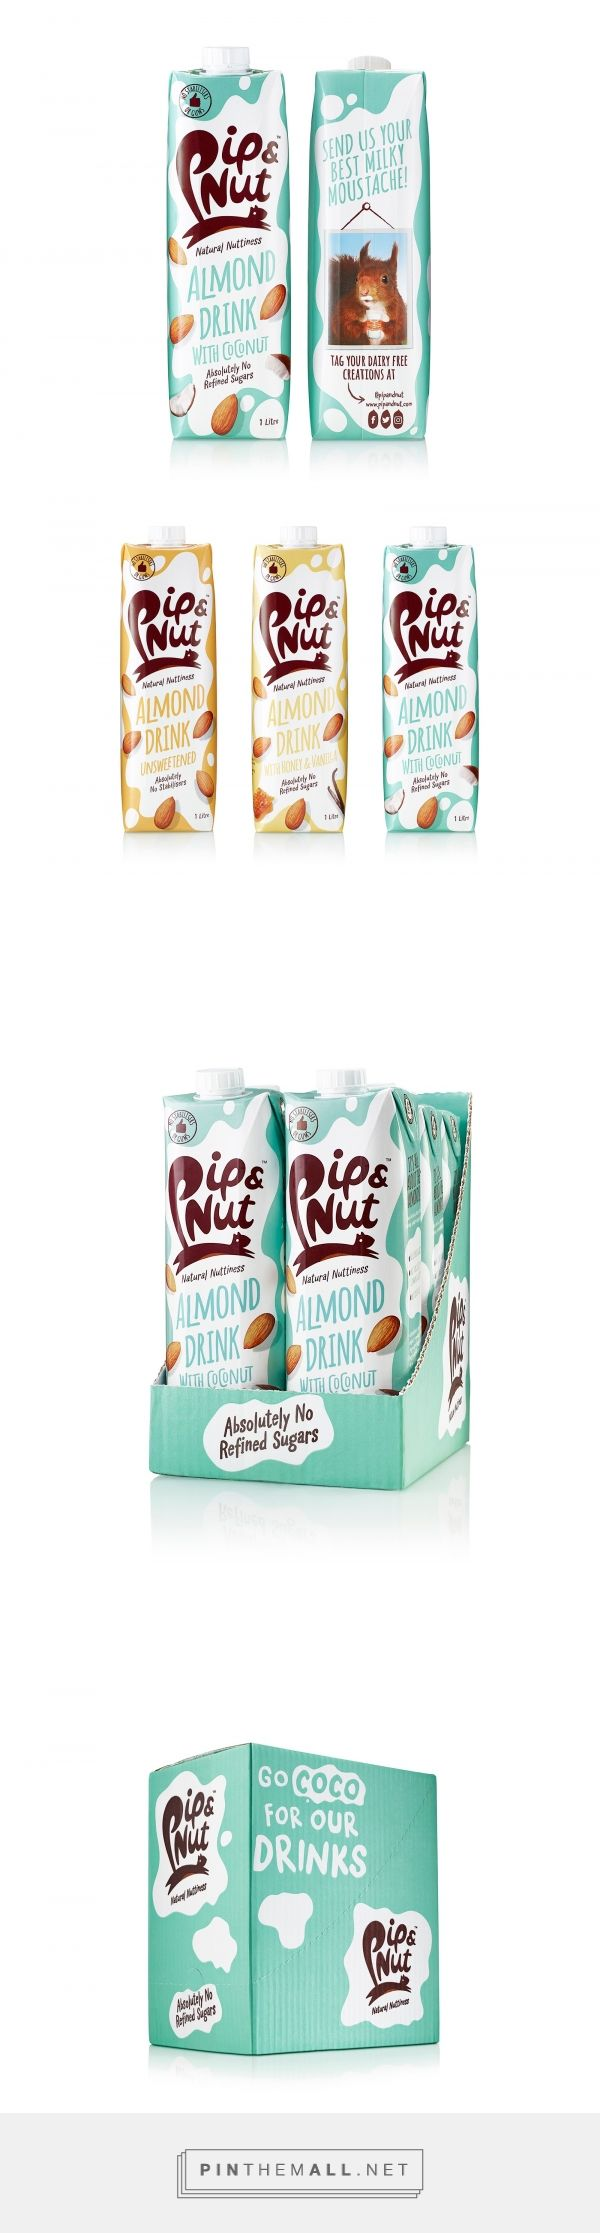 Pip & Nut Almond Drinks - Packaging of the World - Creative Package Design Gallery - http://www.packagingoftheworld.com/2017/11/pip-nut-almond-drinks.html